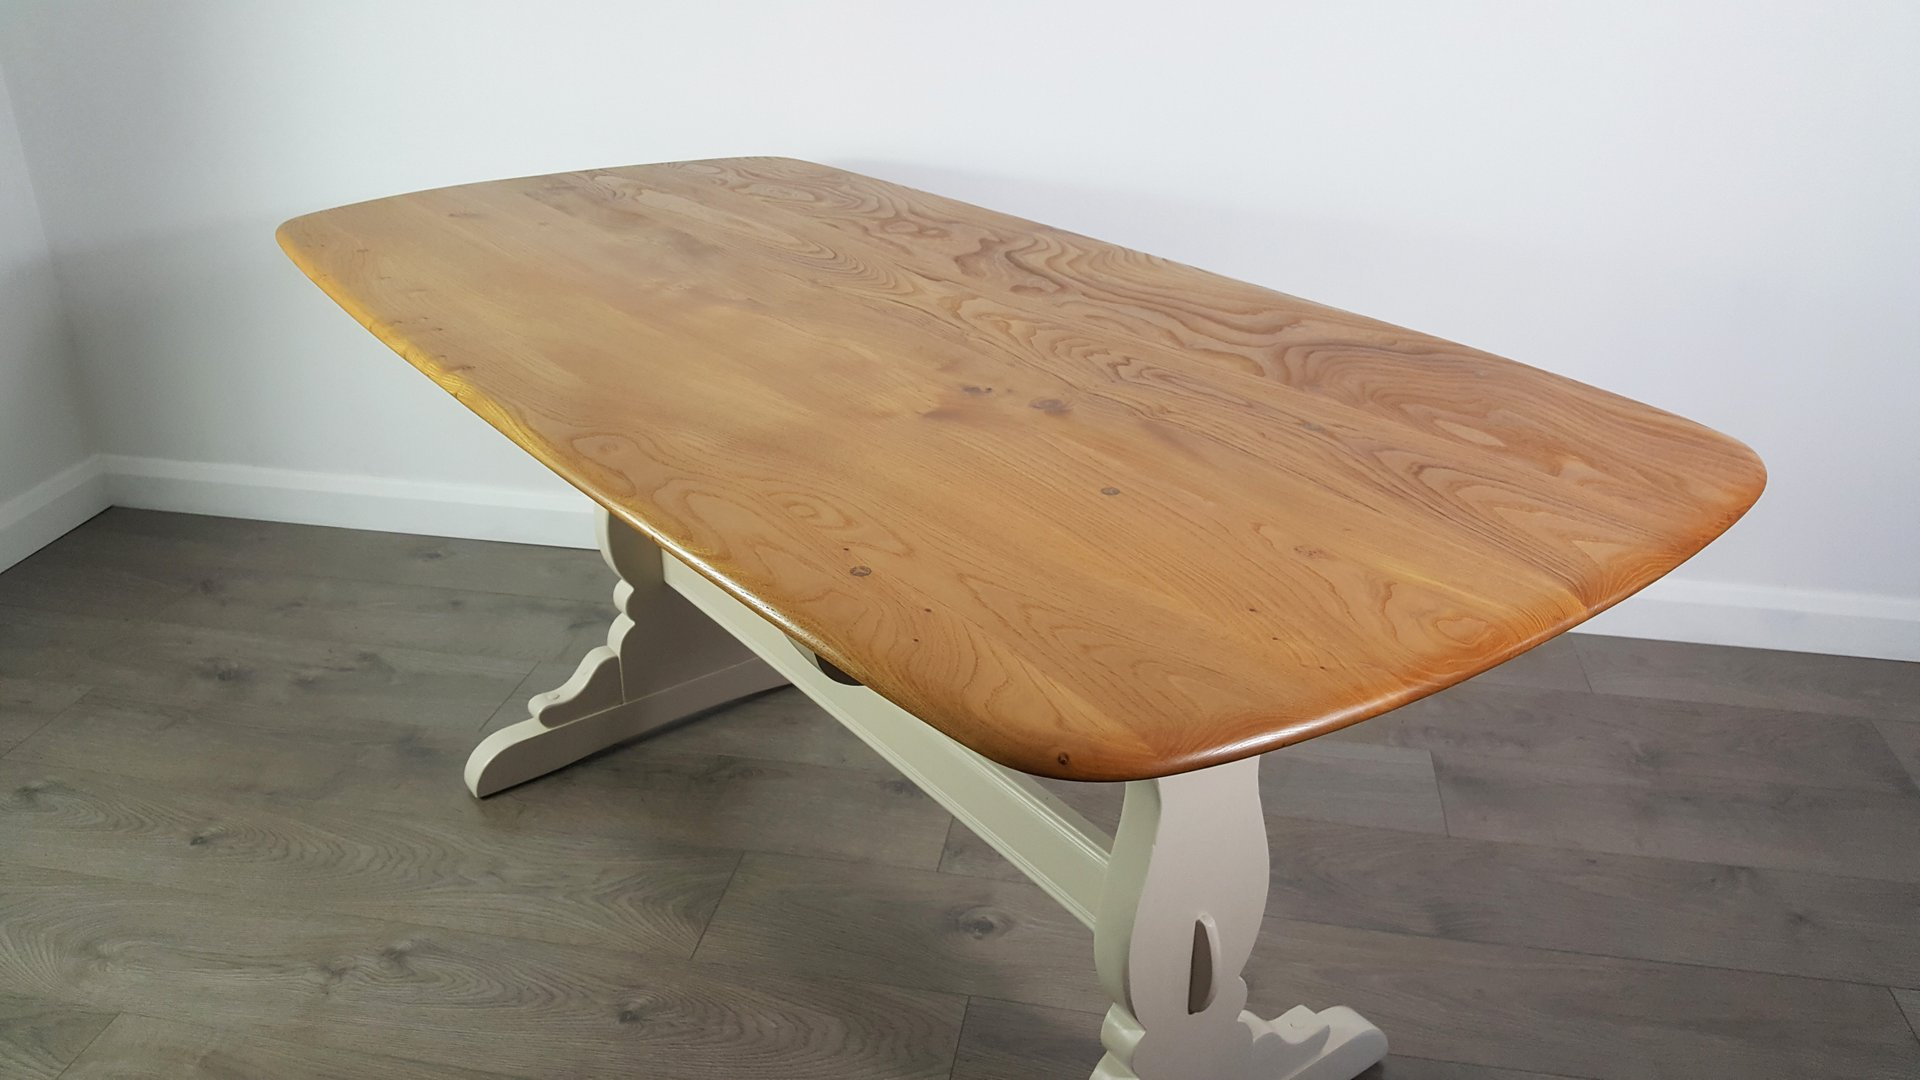 Vintage Refectory Table by Lucian Ercolani for Ercol for sale at